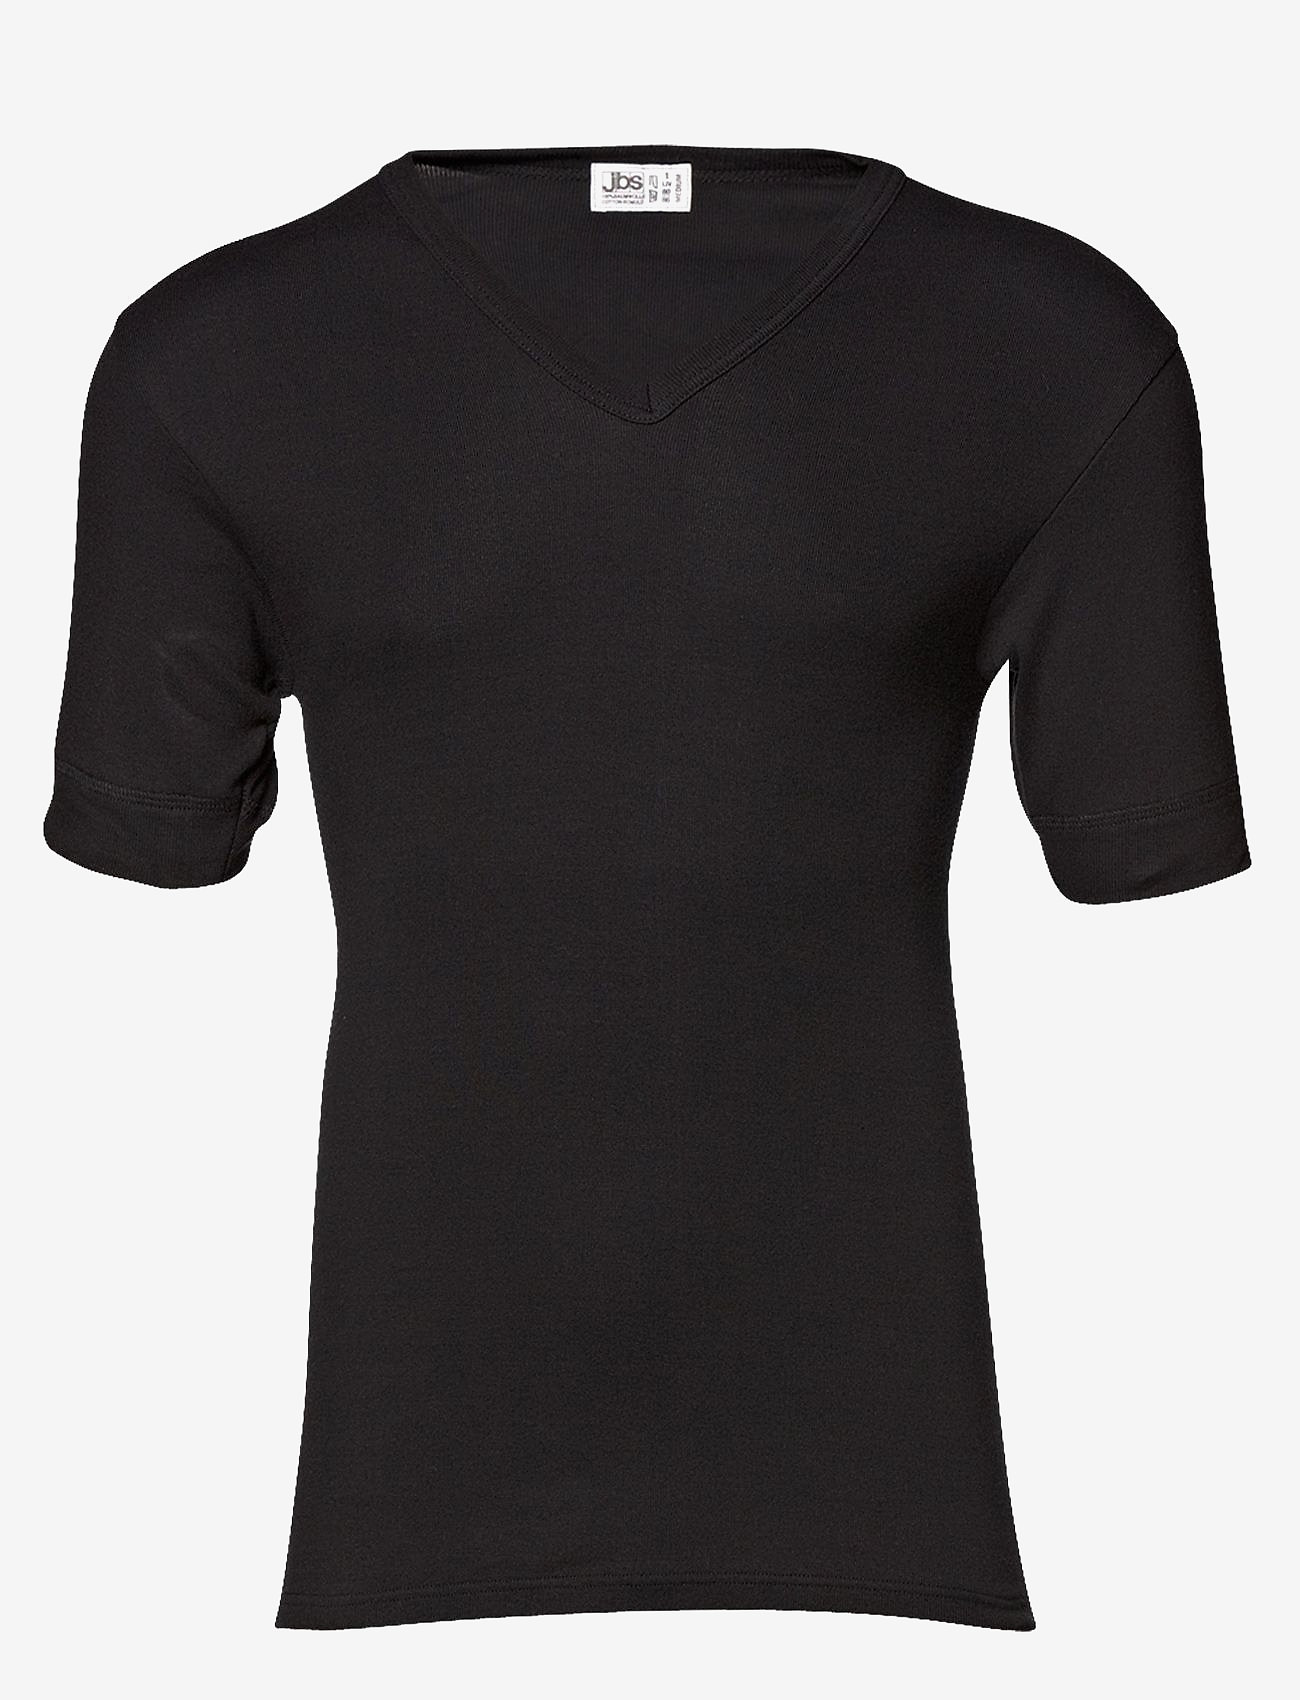 JBS - Original v-neck tee - basic t-shirts - black